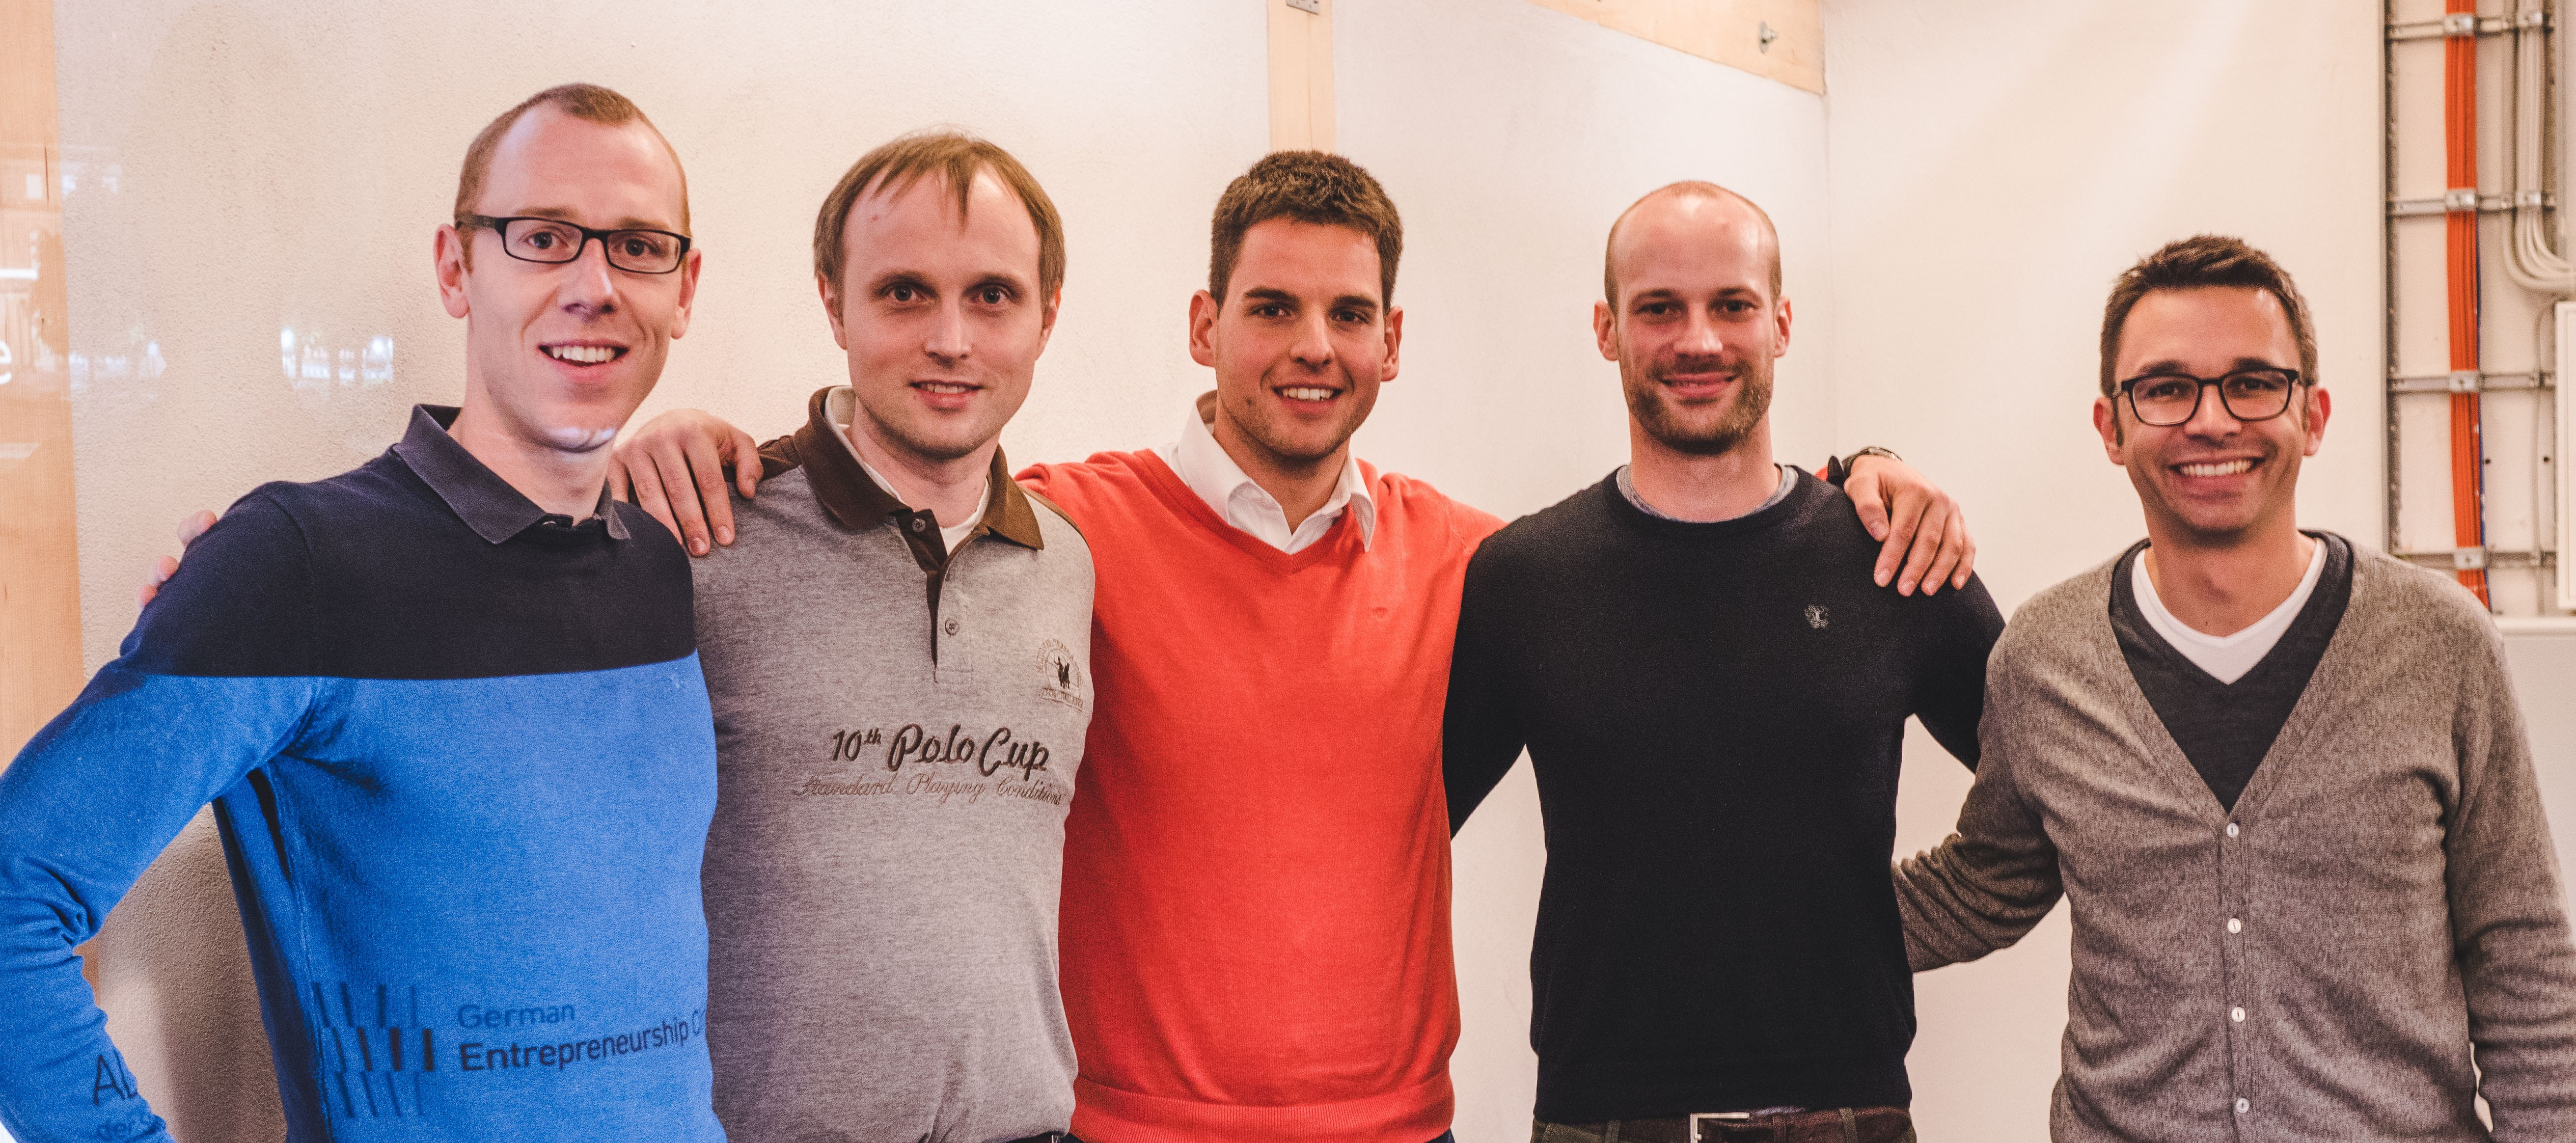 Twhiz – Price2Beat - Sieger beim IdeaHub 4.0 Pitch in Stuttgart 2017